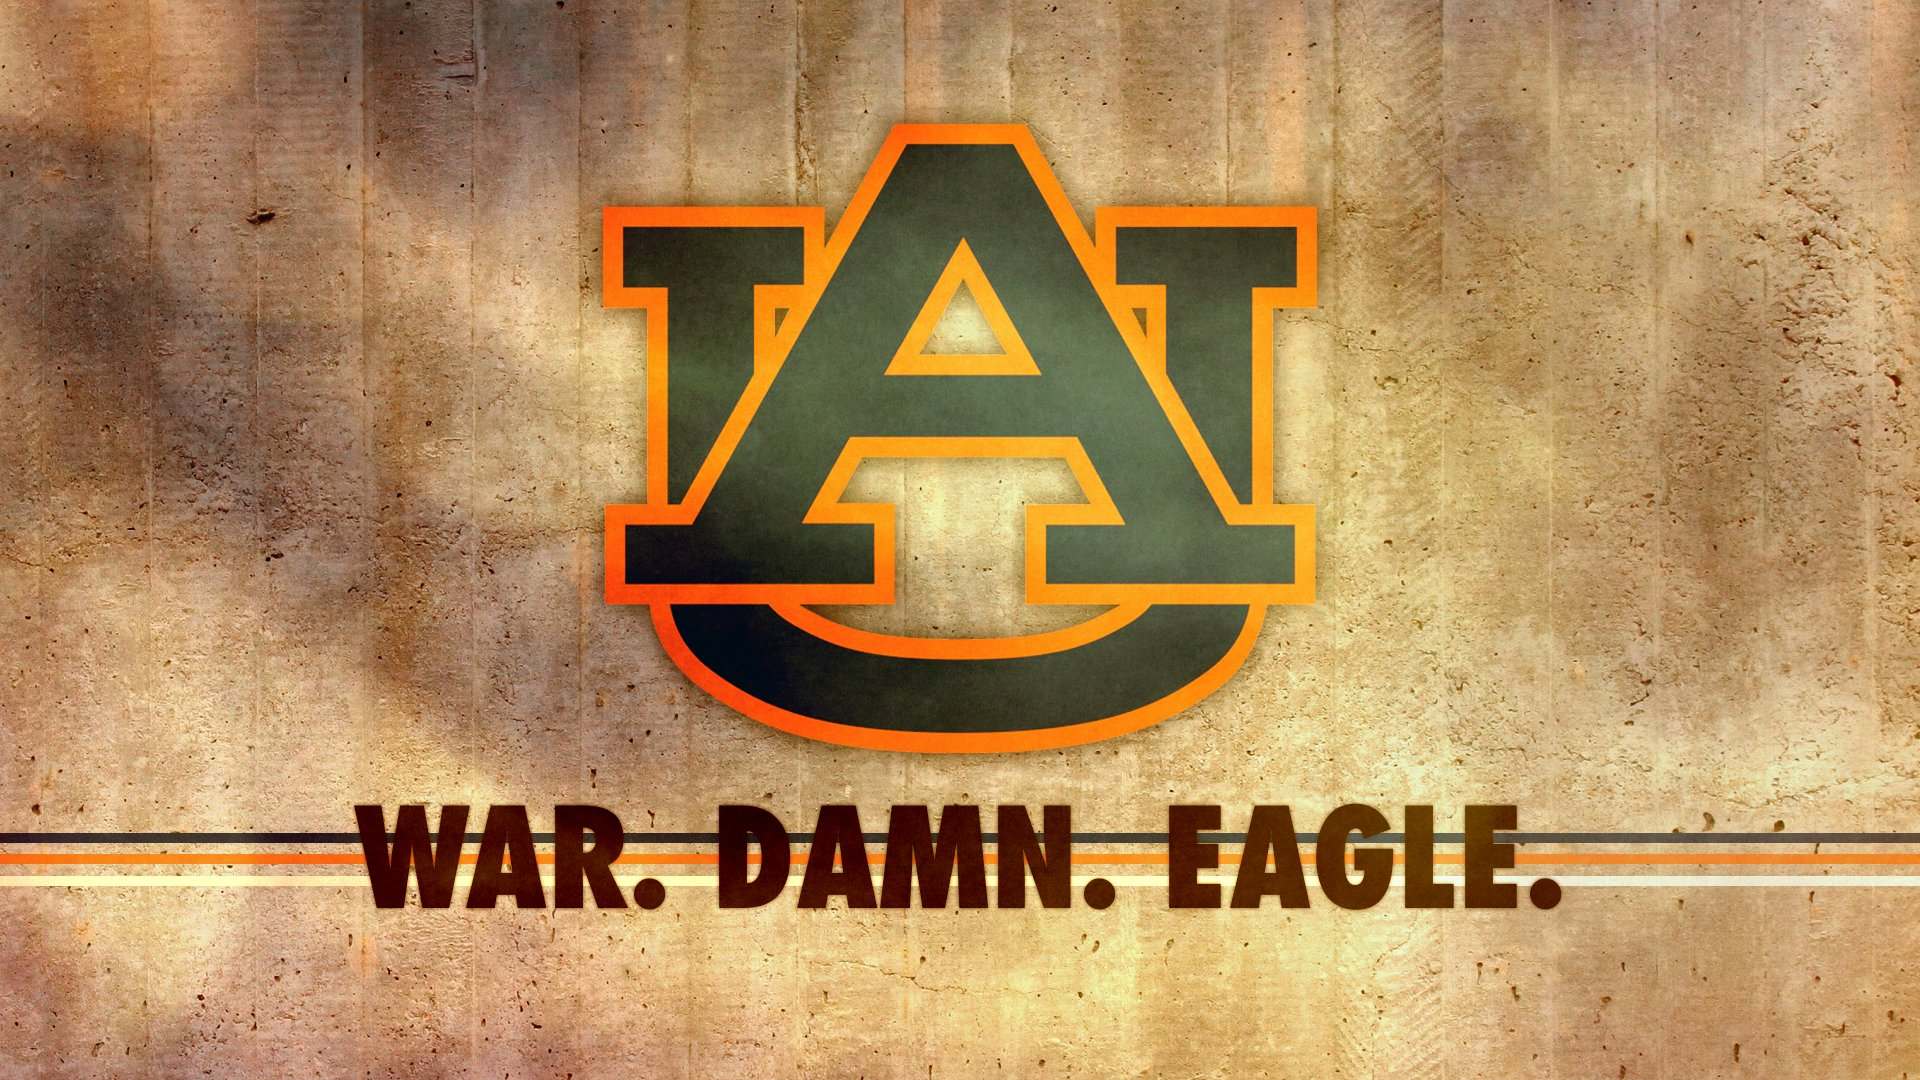 AUBURN TIGERS College Football Wallpaper Background 1920x1080